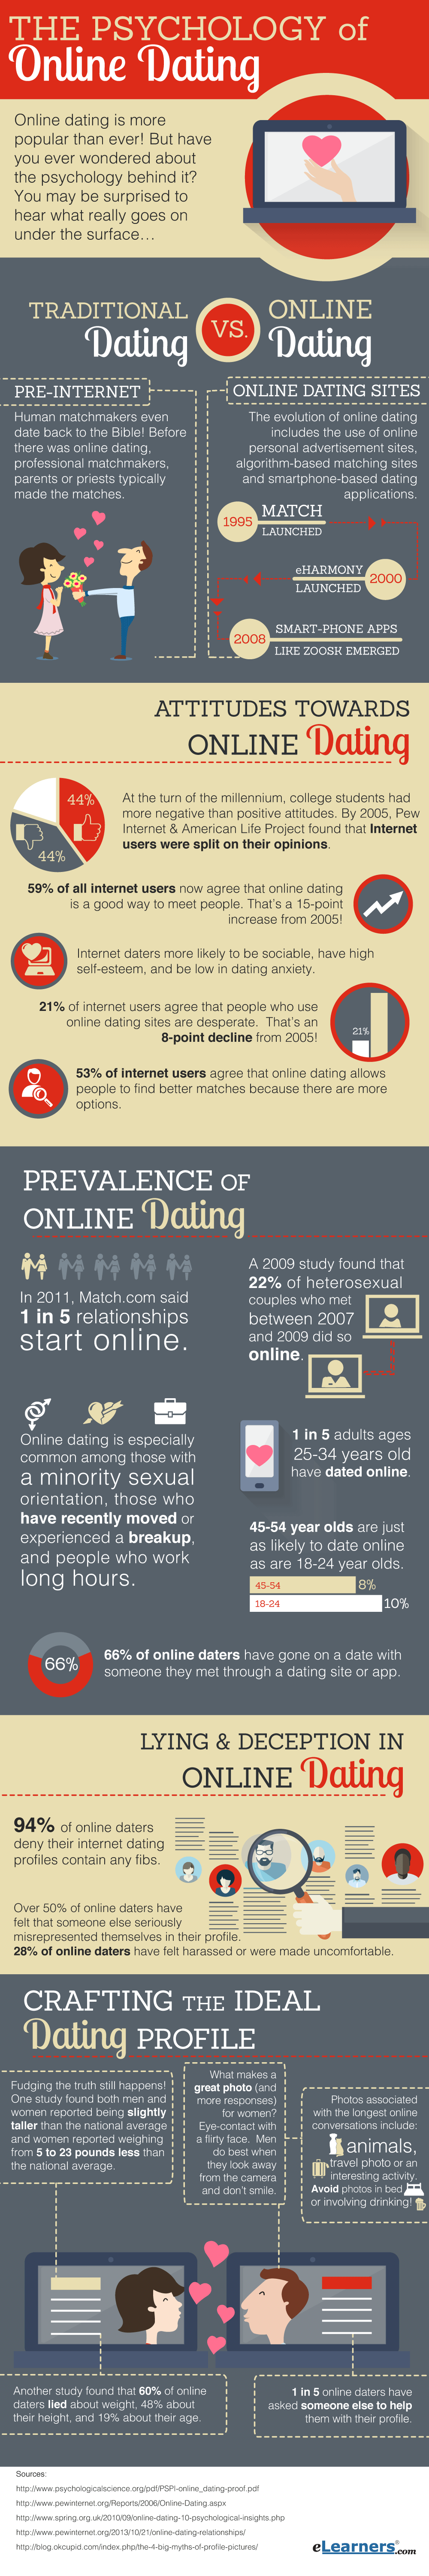 Psychology-of-Online-Dating-infographic